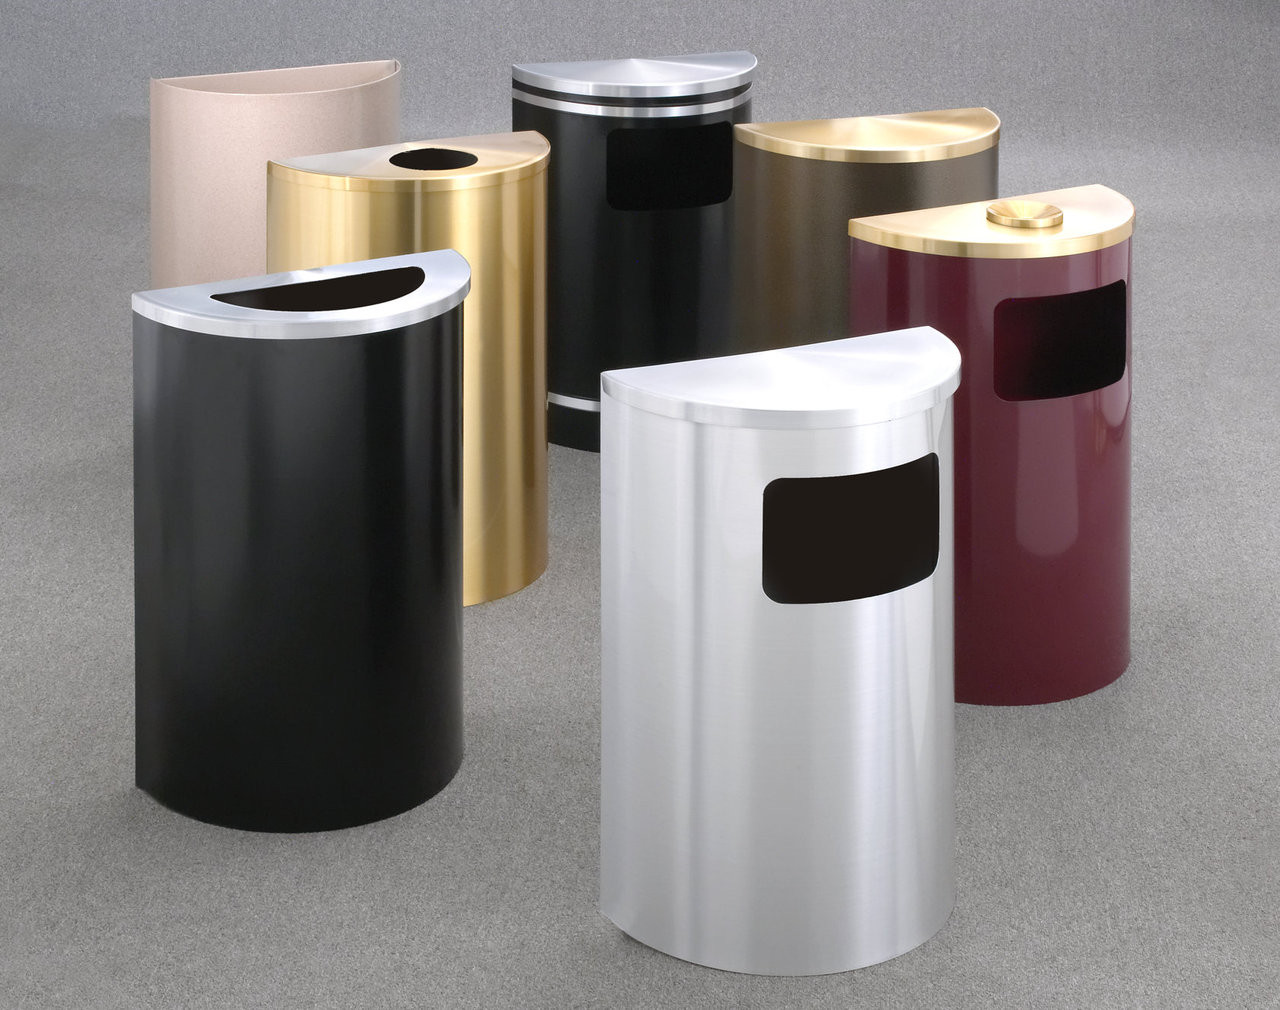 Half Round Trash and Waste Group